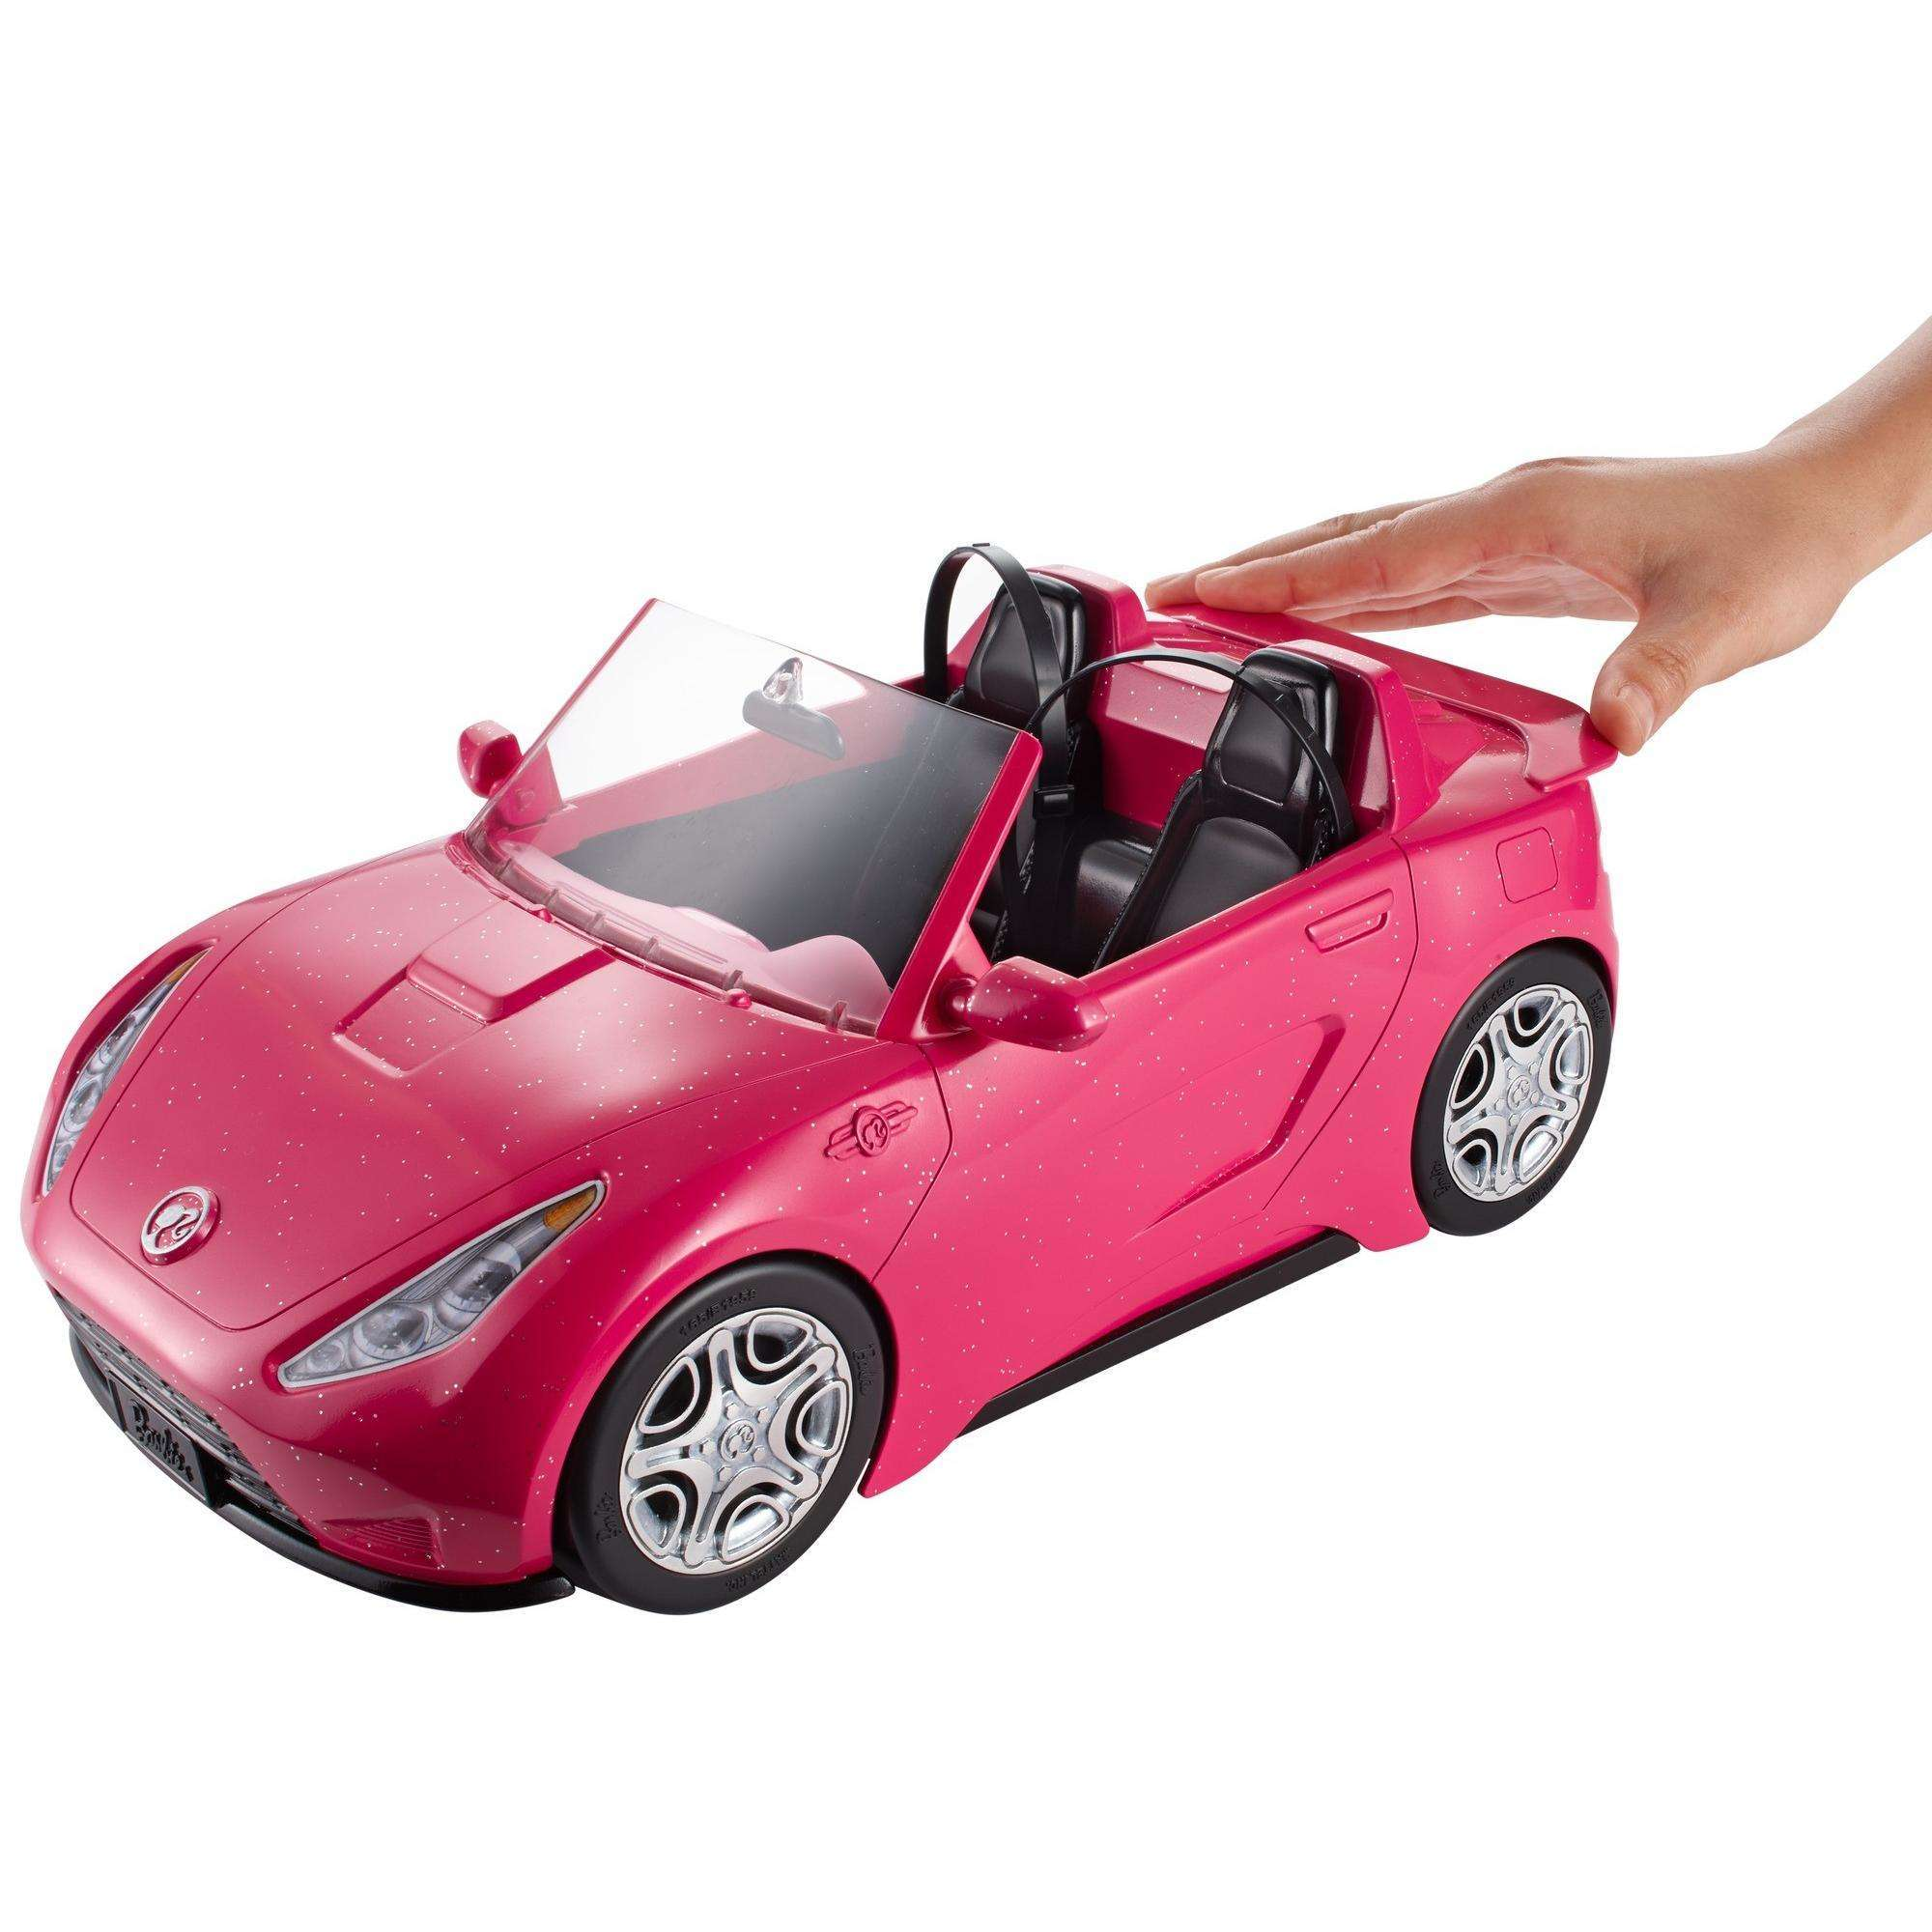 Barbie Estate Play Vehicle Signature Pink Convertible With Seat Belts Walmart Com Walmart Com